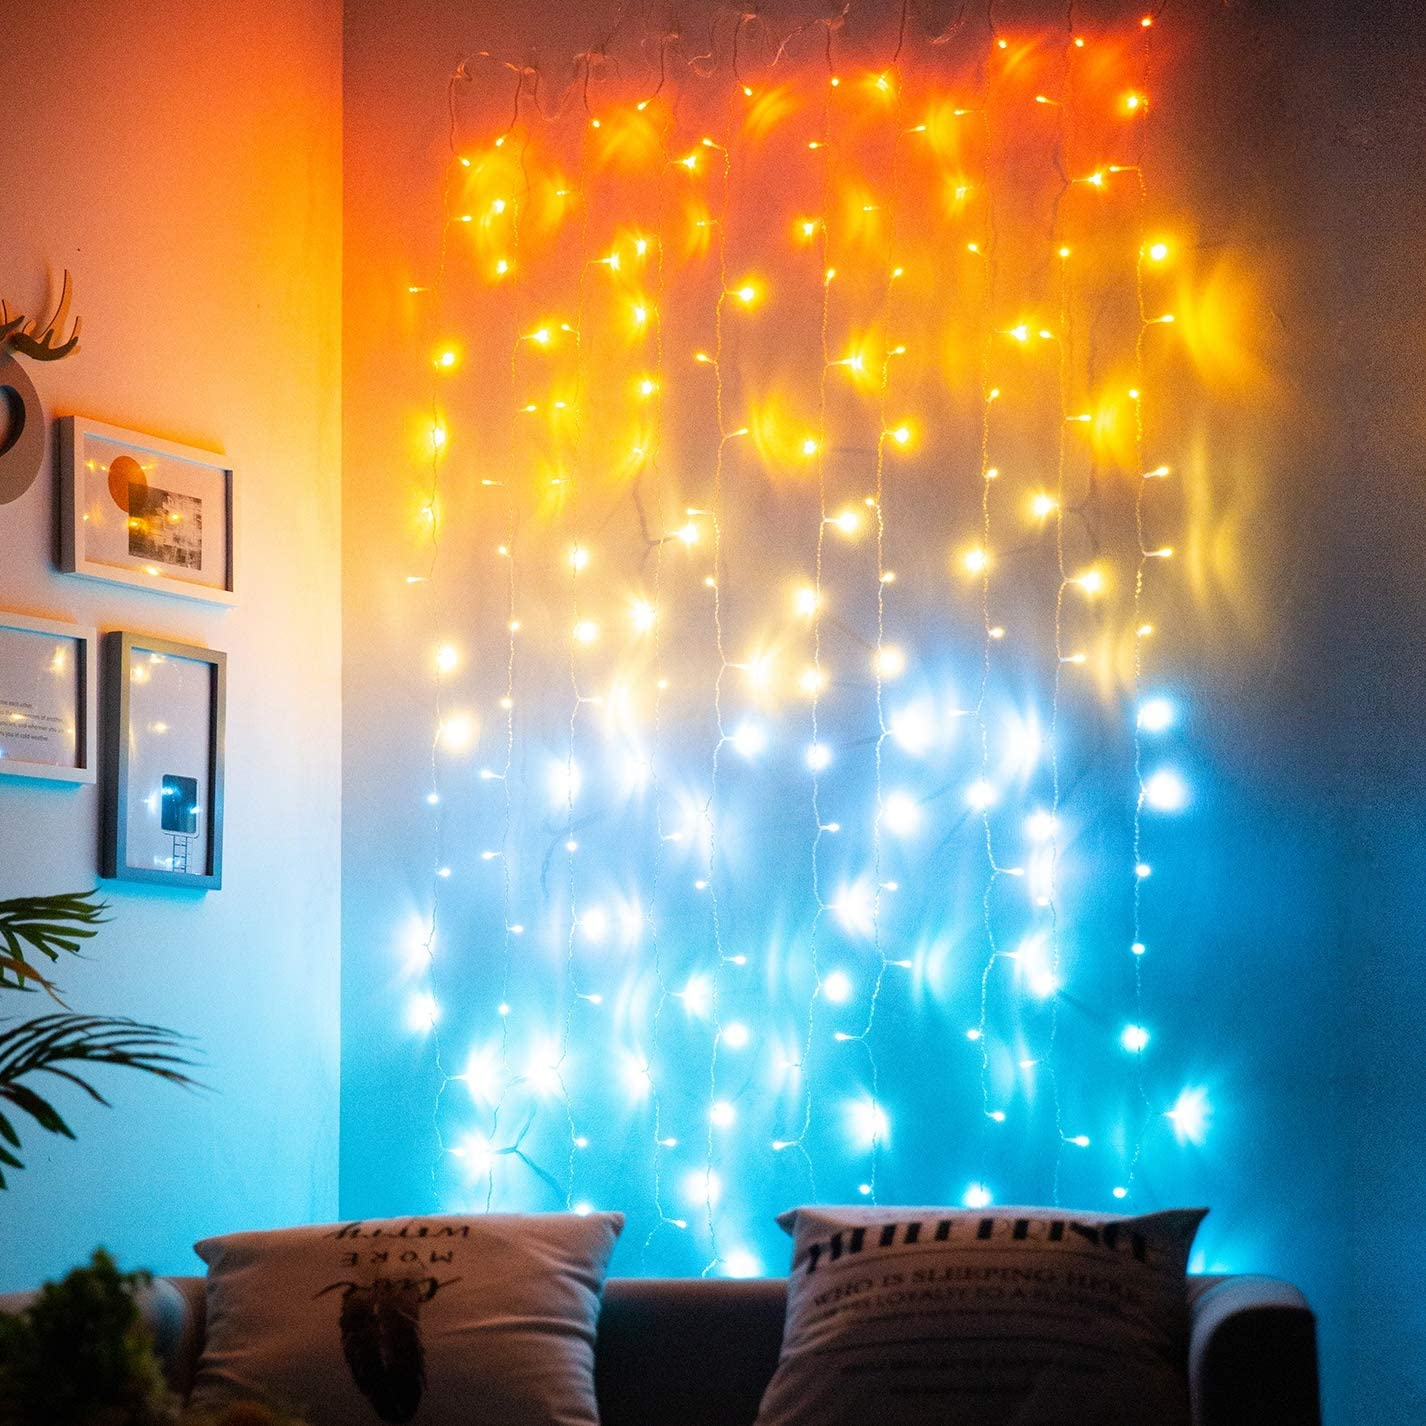 Sunset Orange Curtain Lights for Bedroom Lighted Curtains Led String Lights Coral Burnt Orange Yellow Warm White Turquoise Aqua Blue Fairy Lights for Hawaii Sunroom Ocean Gold and Teal Room Decor